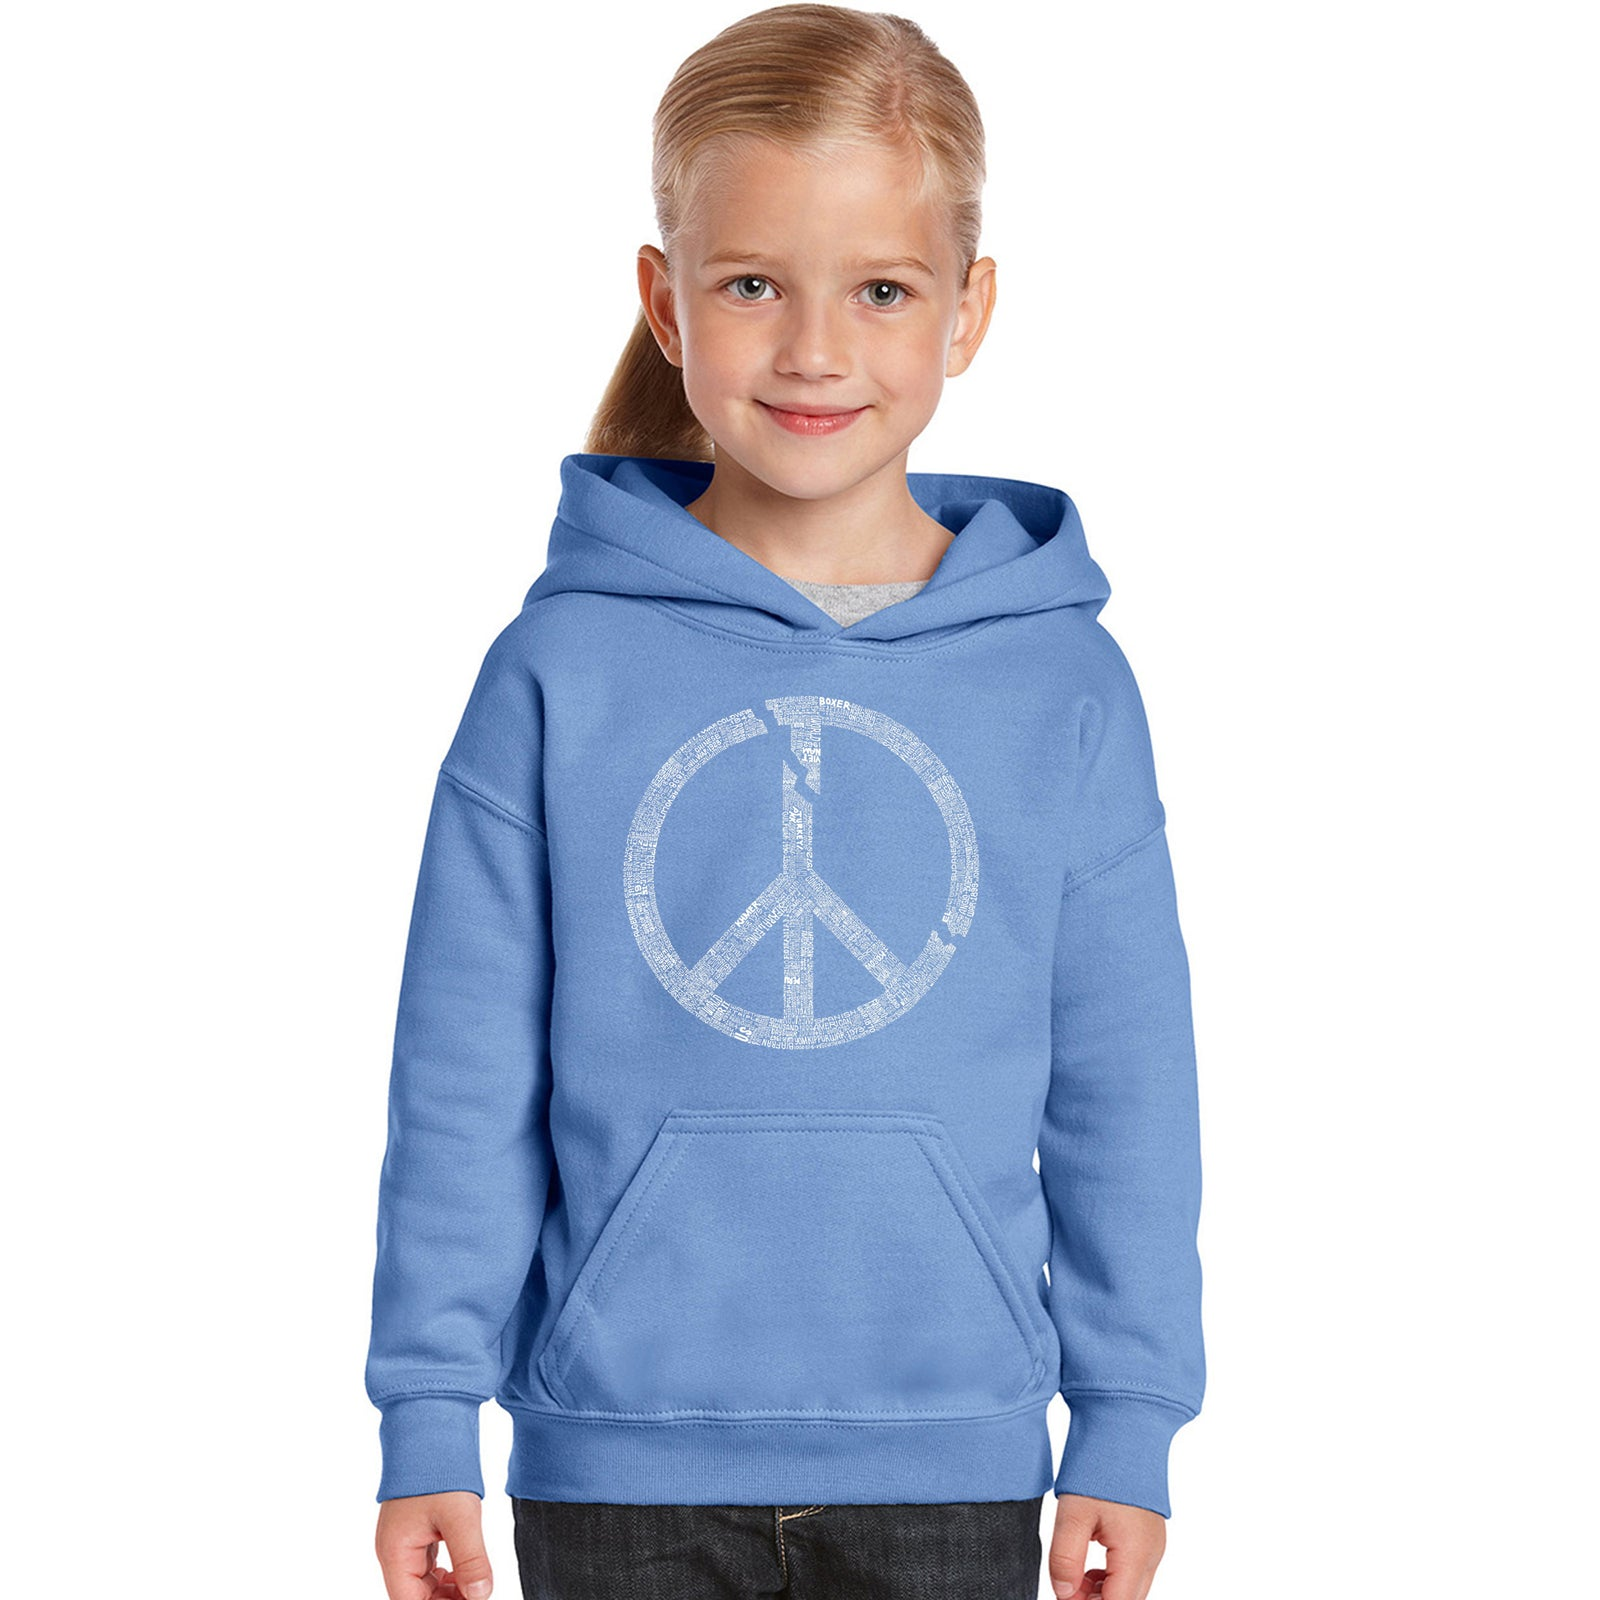 Girl's Hooded Sweatshirt - EVERY MAJOR WORLD CONFLICT SINCE 1770